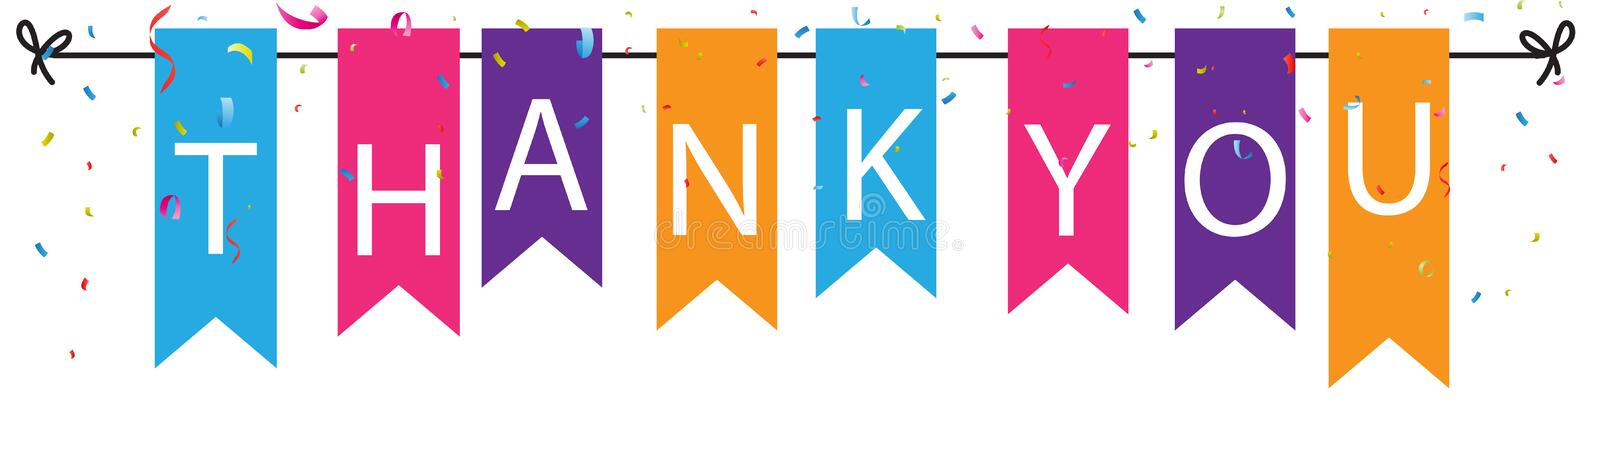 Thank you sign with colorful bunting flags royalty free illustration